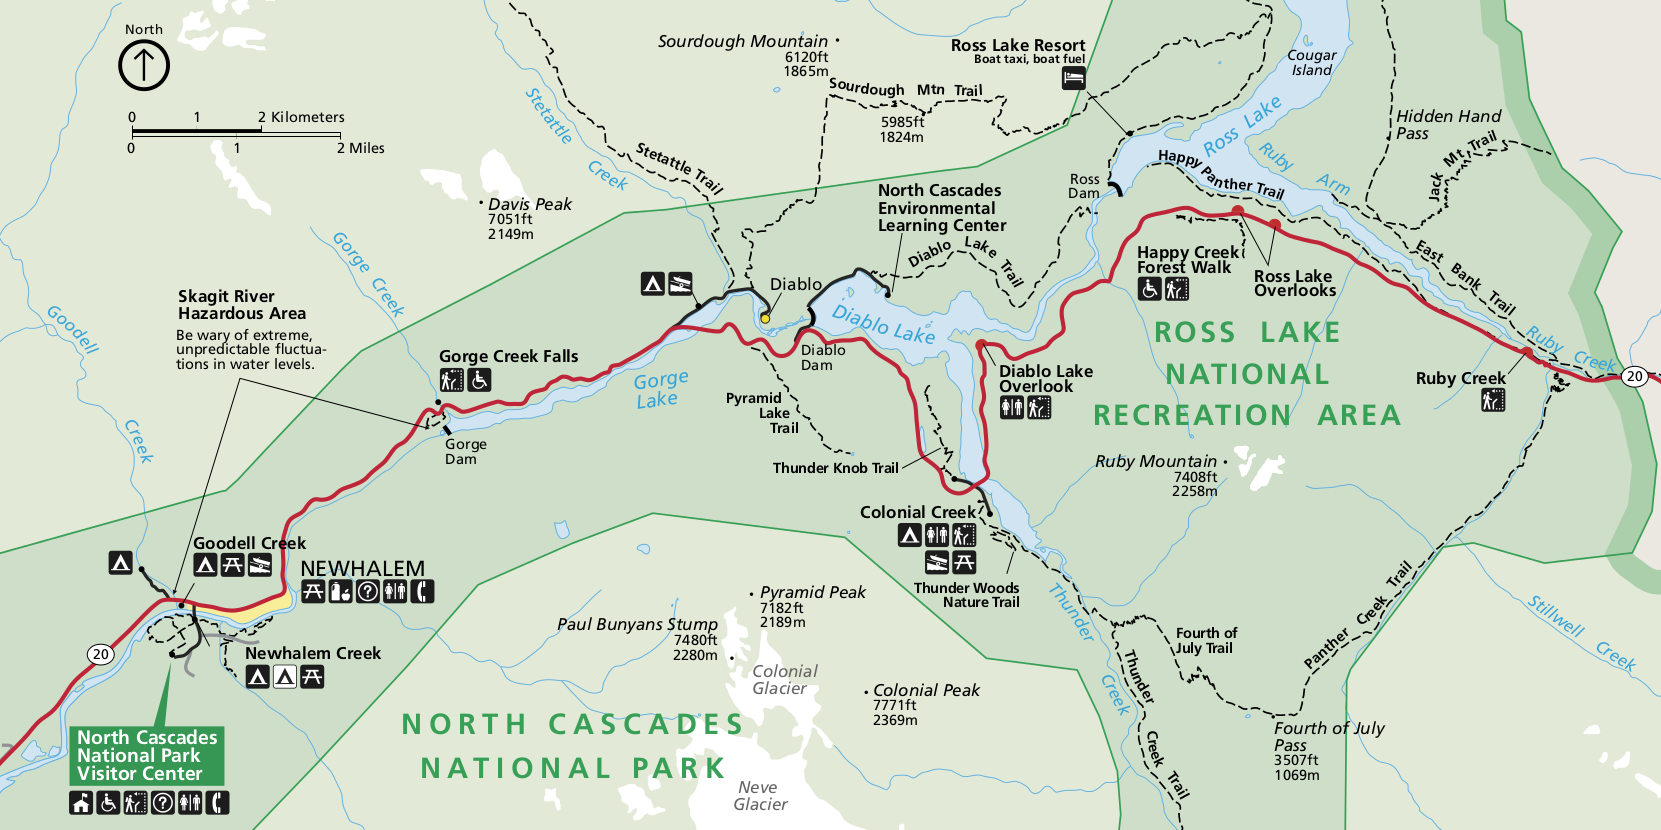 North Cascades National Park Map North Cascades Maps | NPMaps.  just free maps, period.